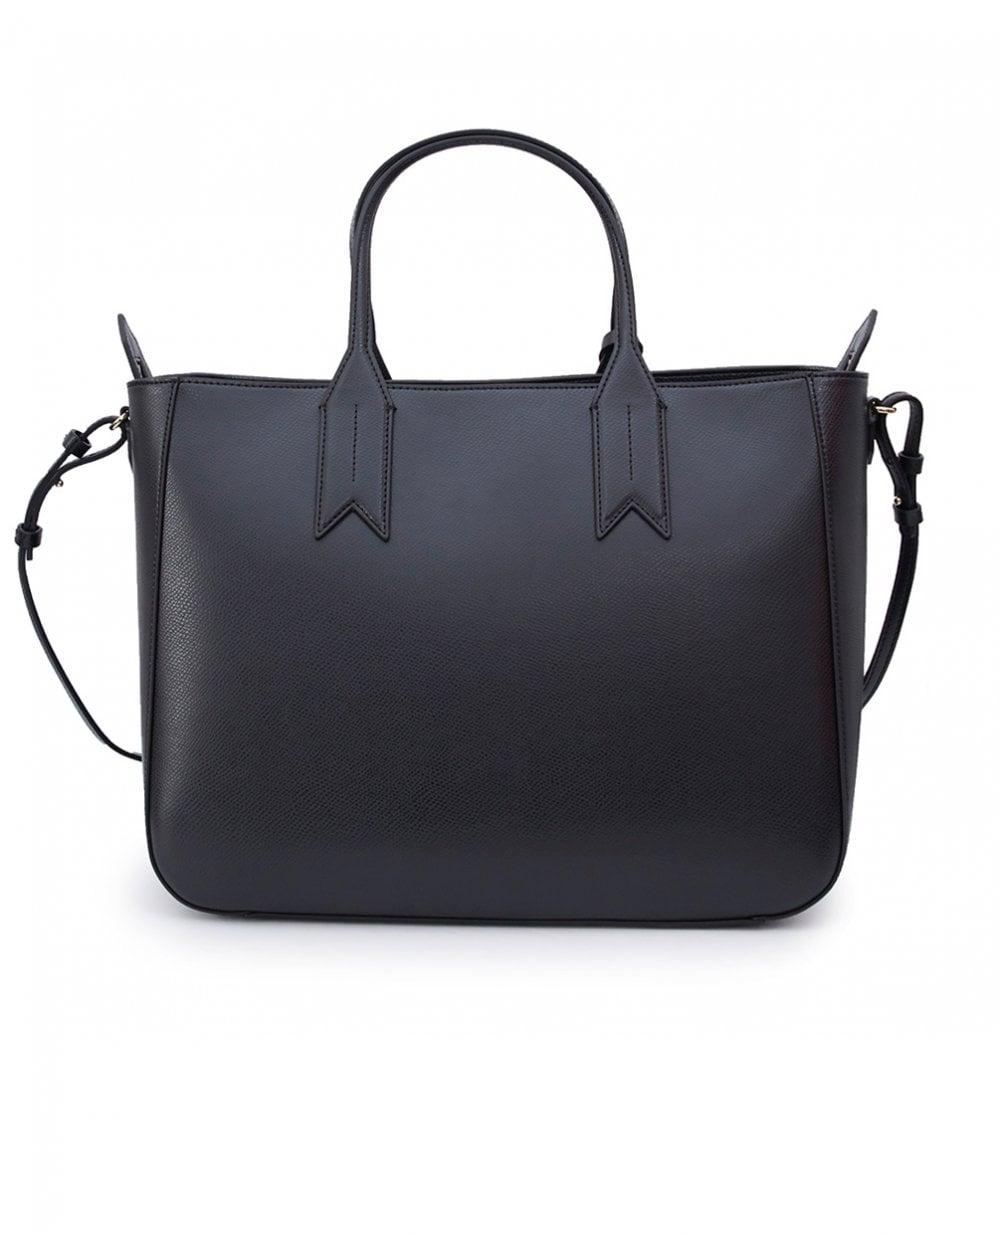 Lyst - Emporio Armani Frida Zip Top Tote Bag in Black for Men ed62509aadcfb